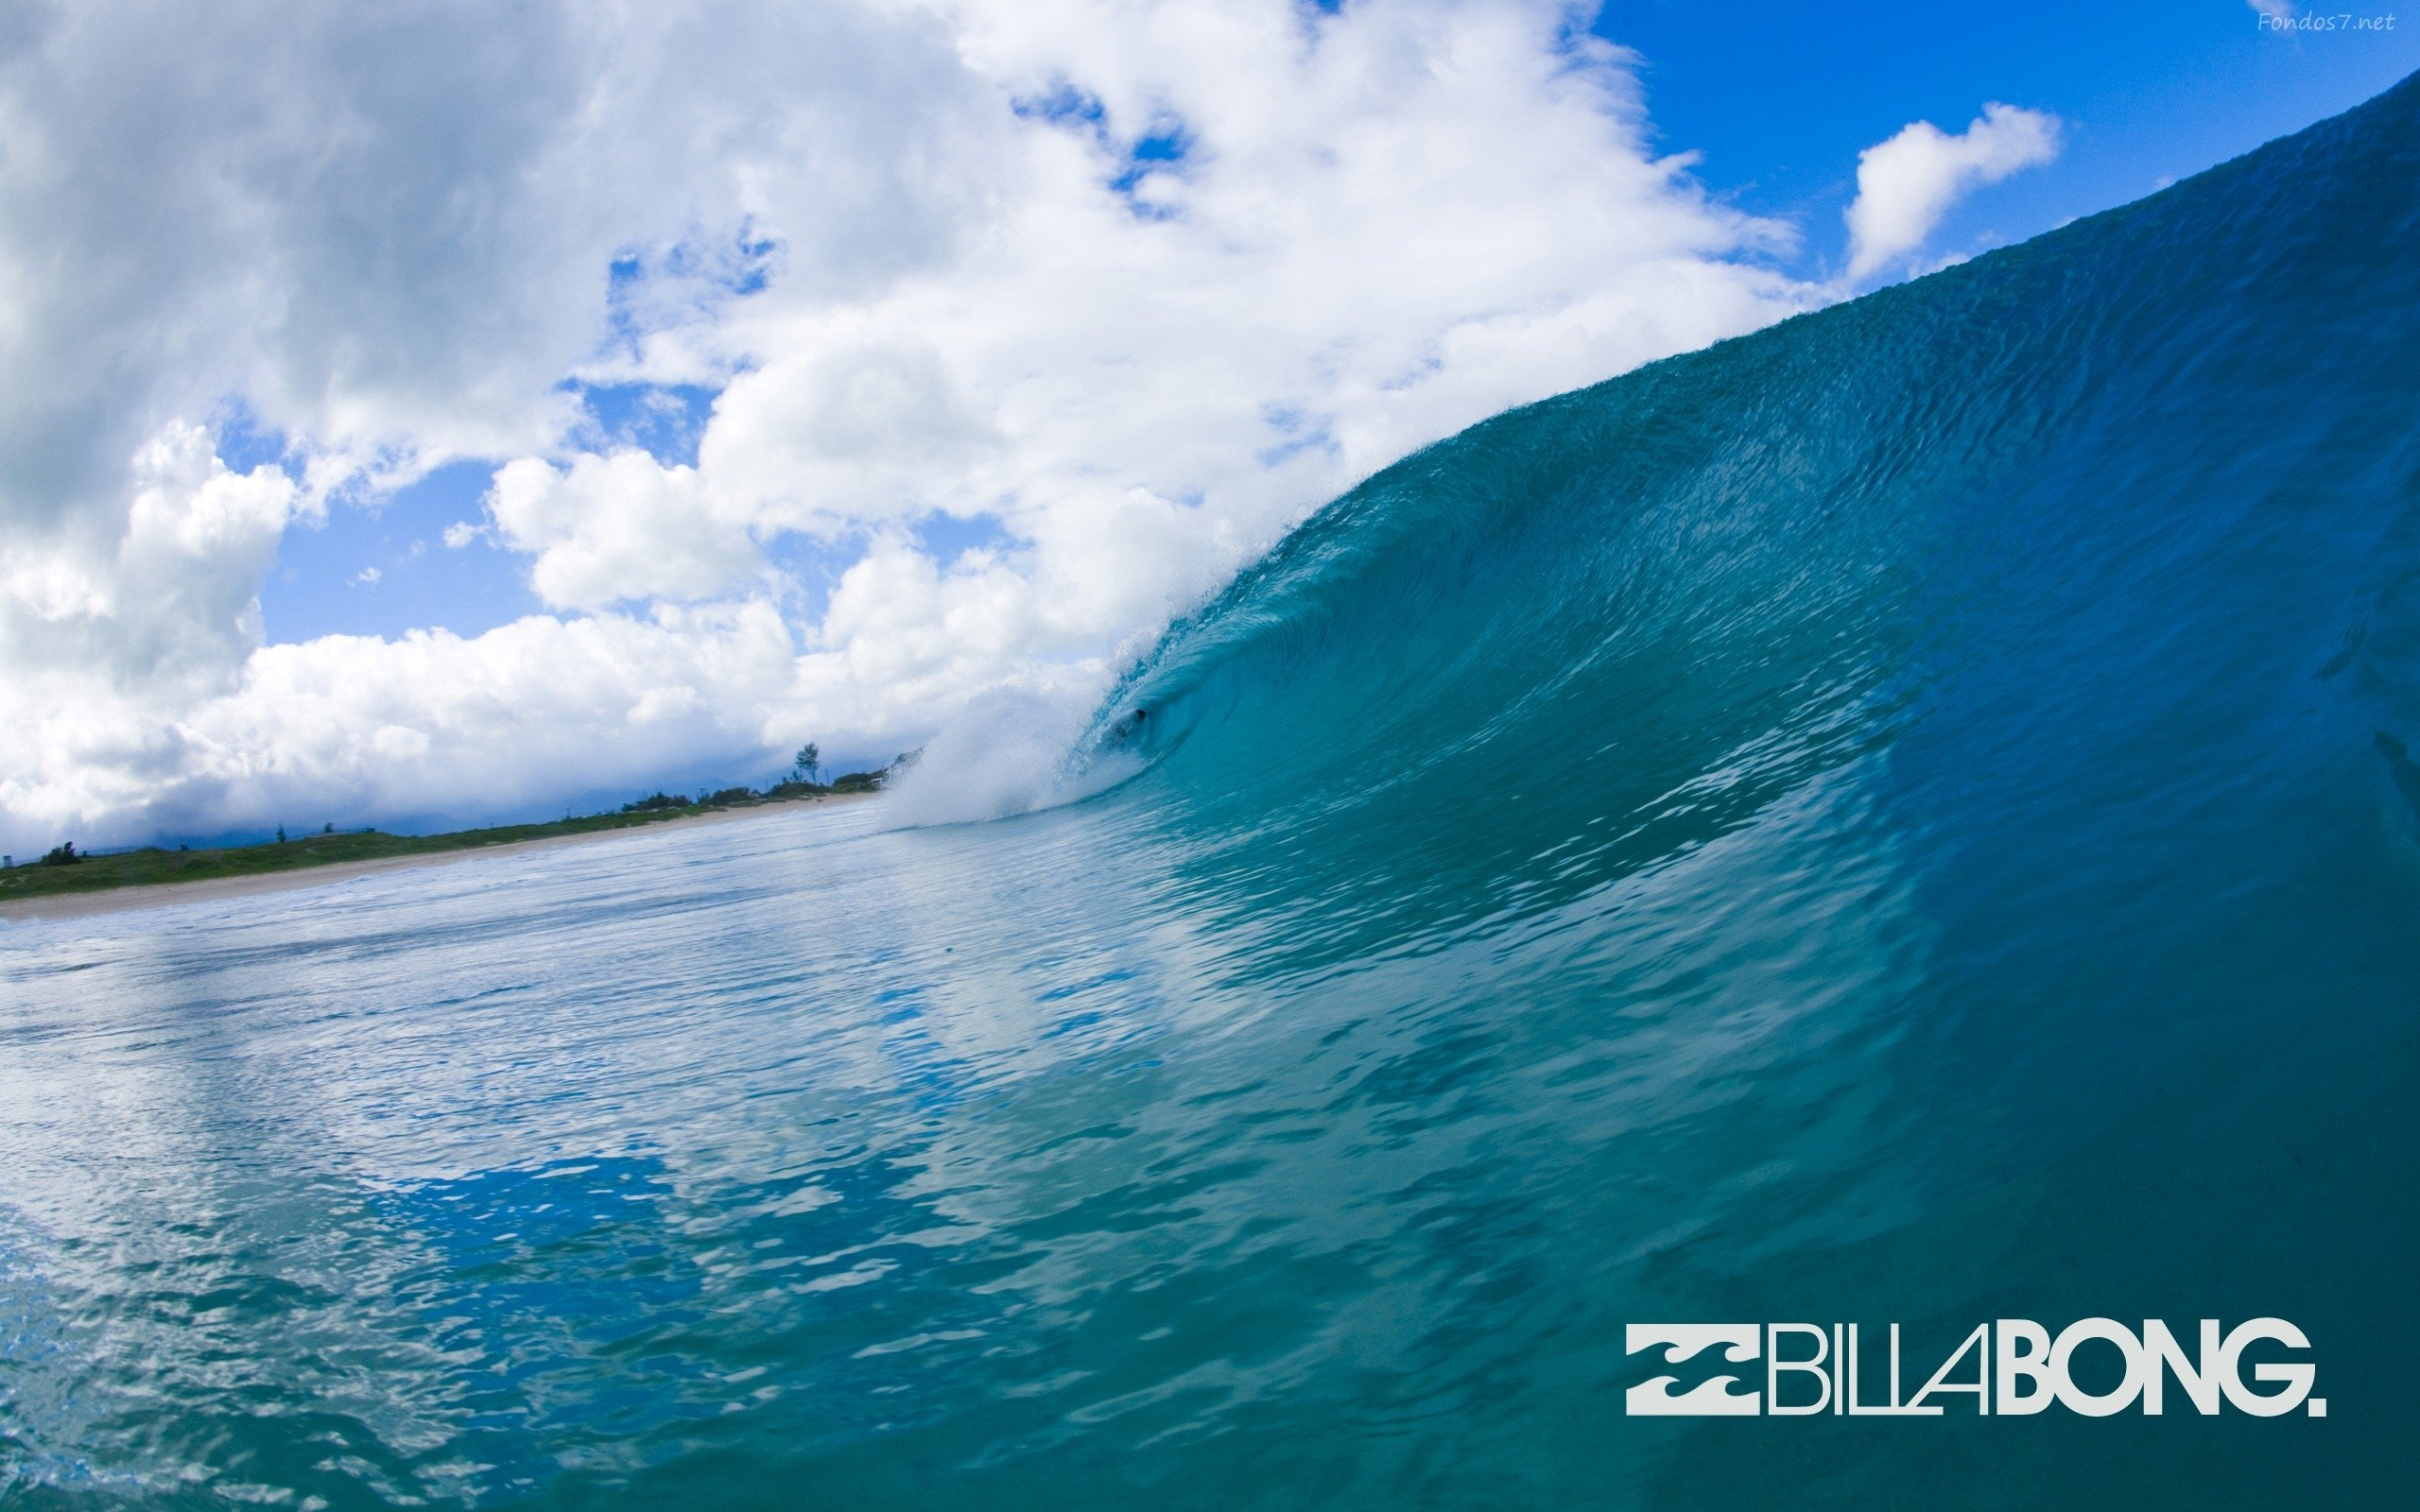 Billabong Surf Wallpaper Olas billabong surfing bajo 2560x1600